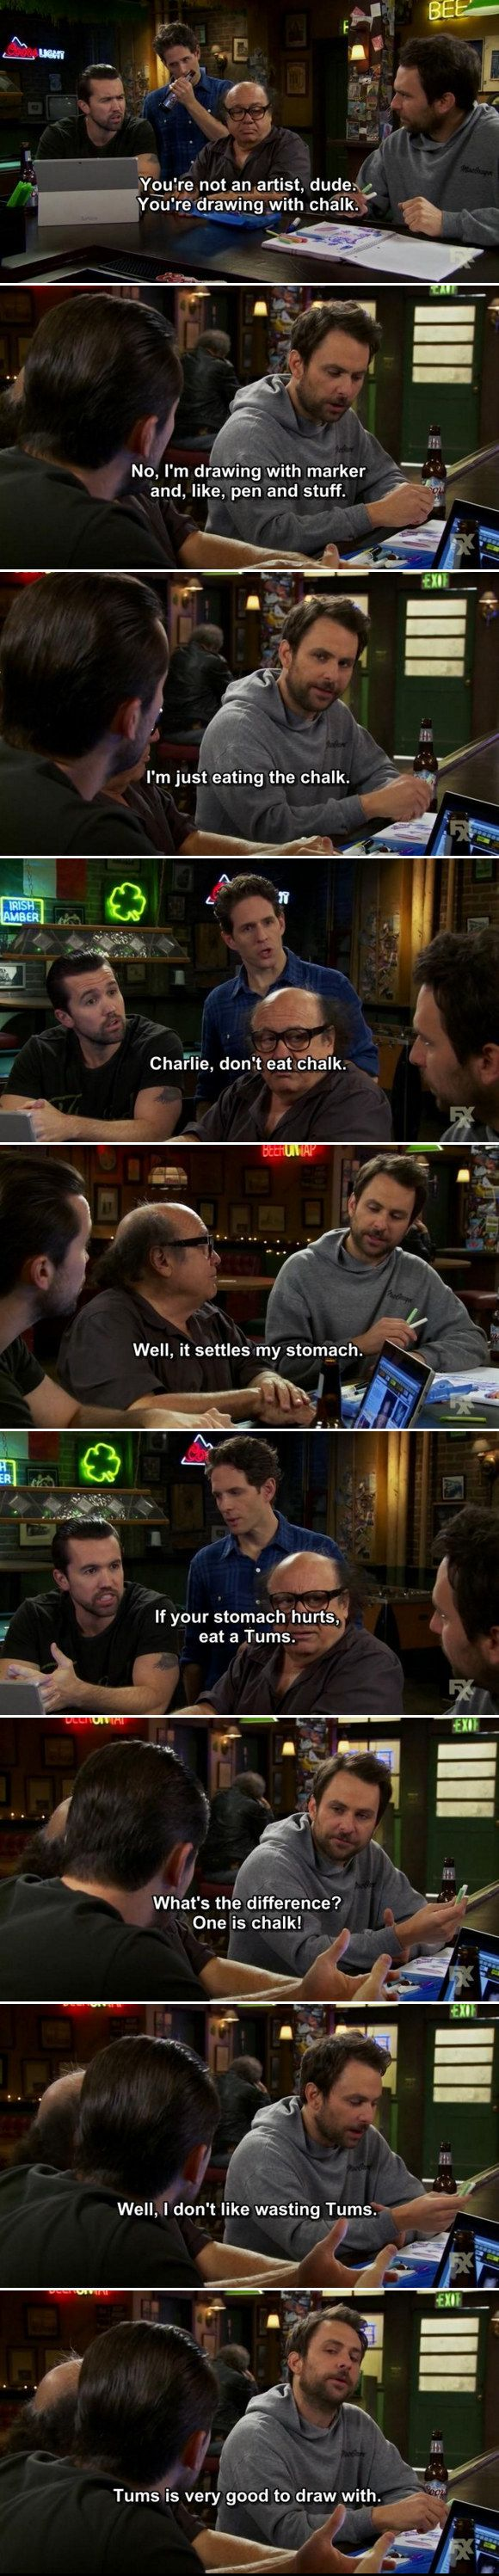 When Charlie experienced the sort of struggle every artist has.